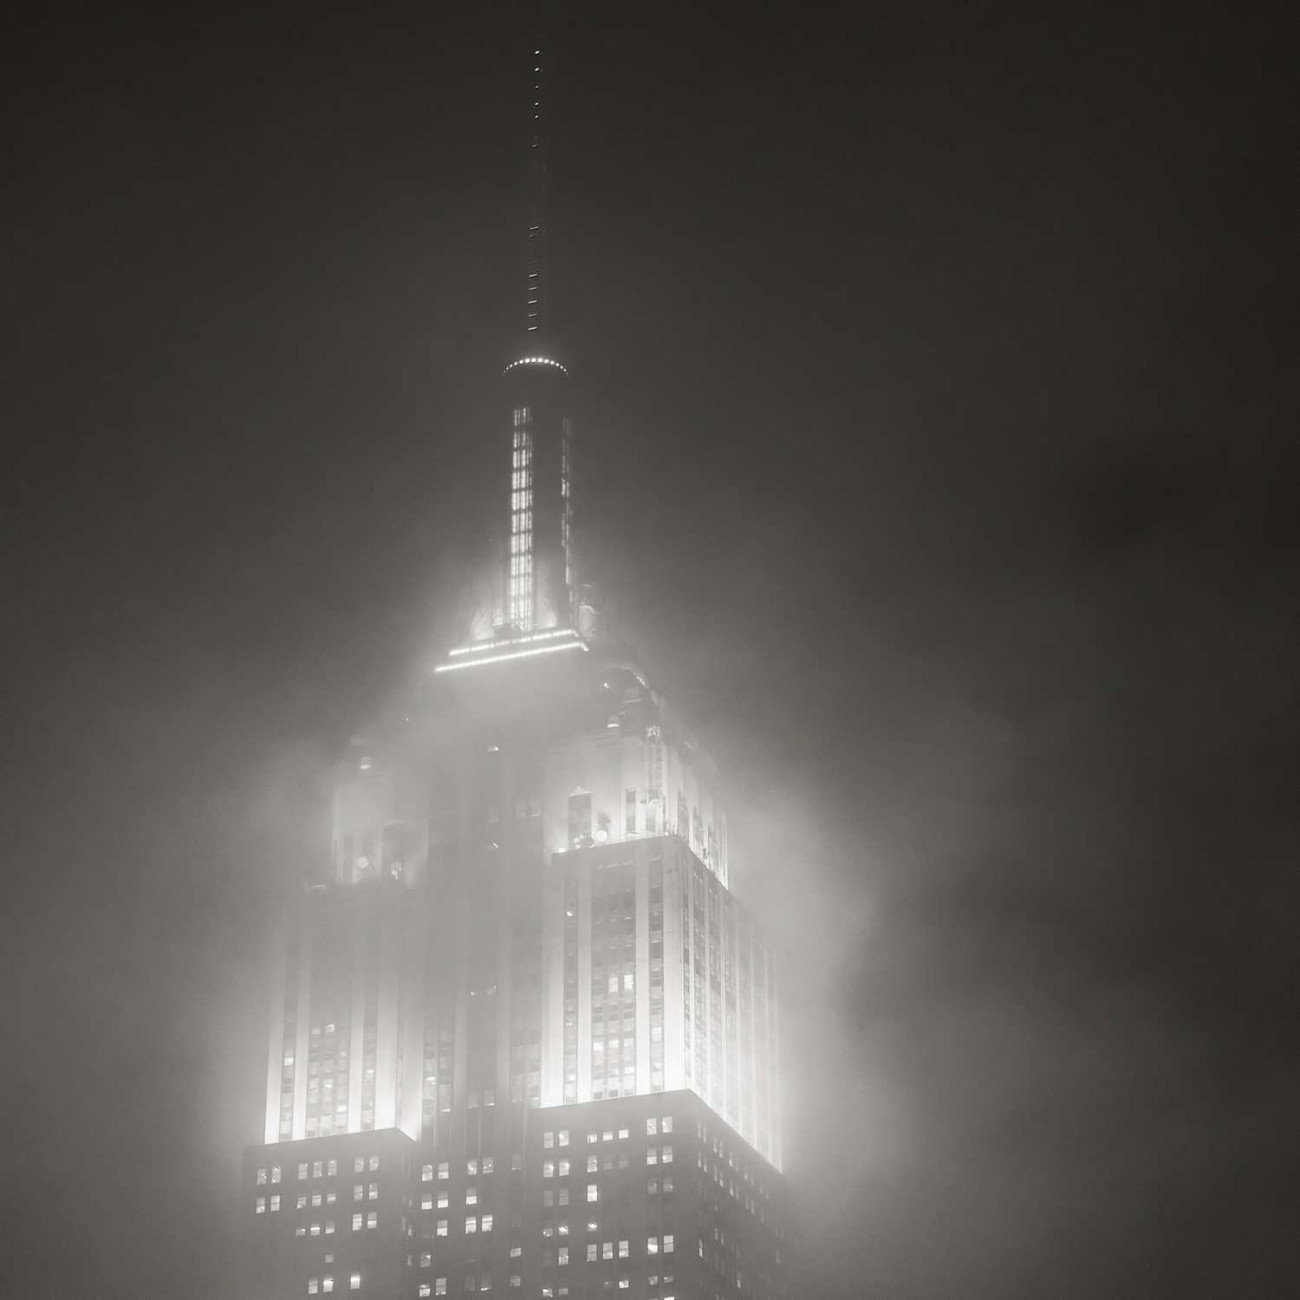 Empire State Building and passing cloud at night, NY, 2014